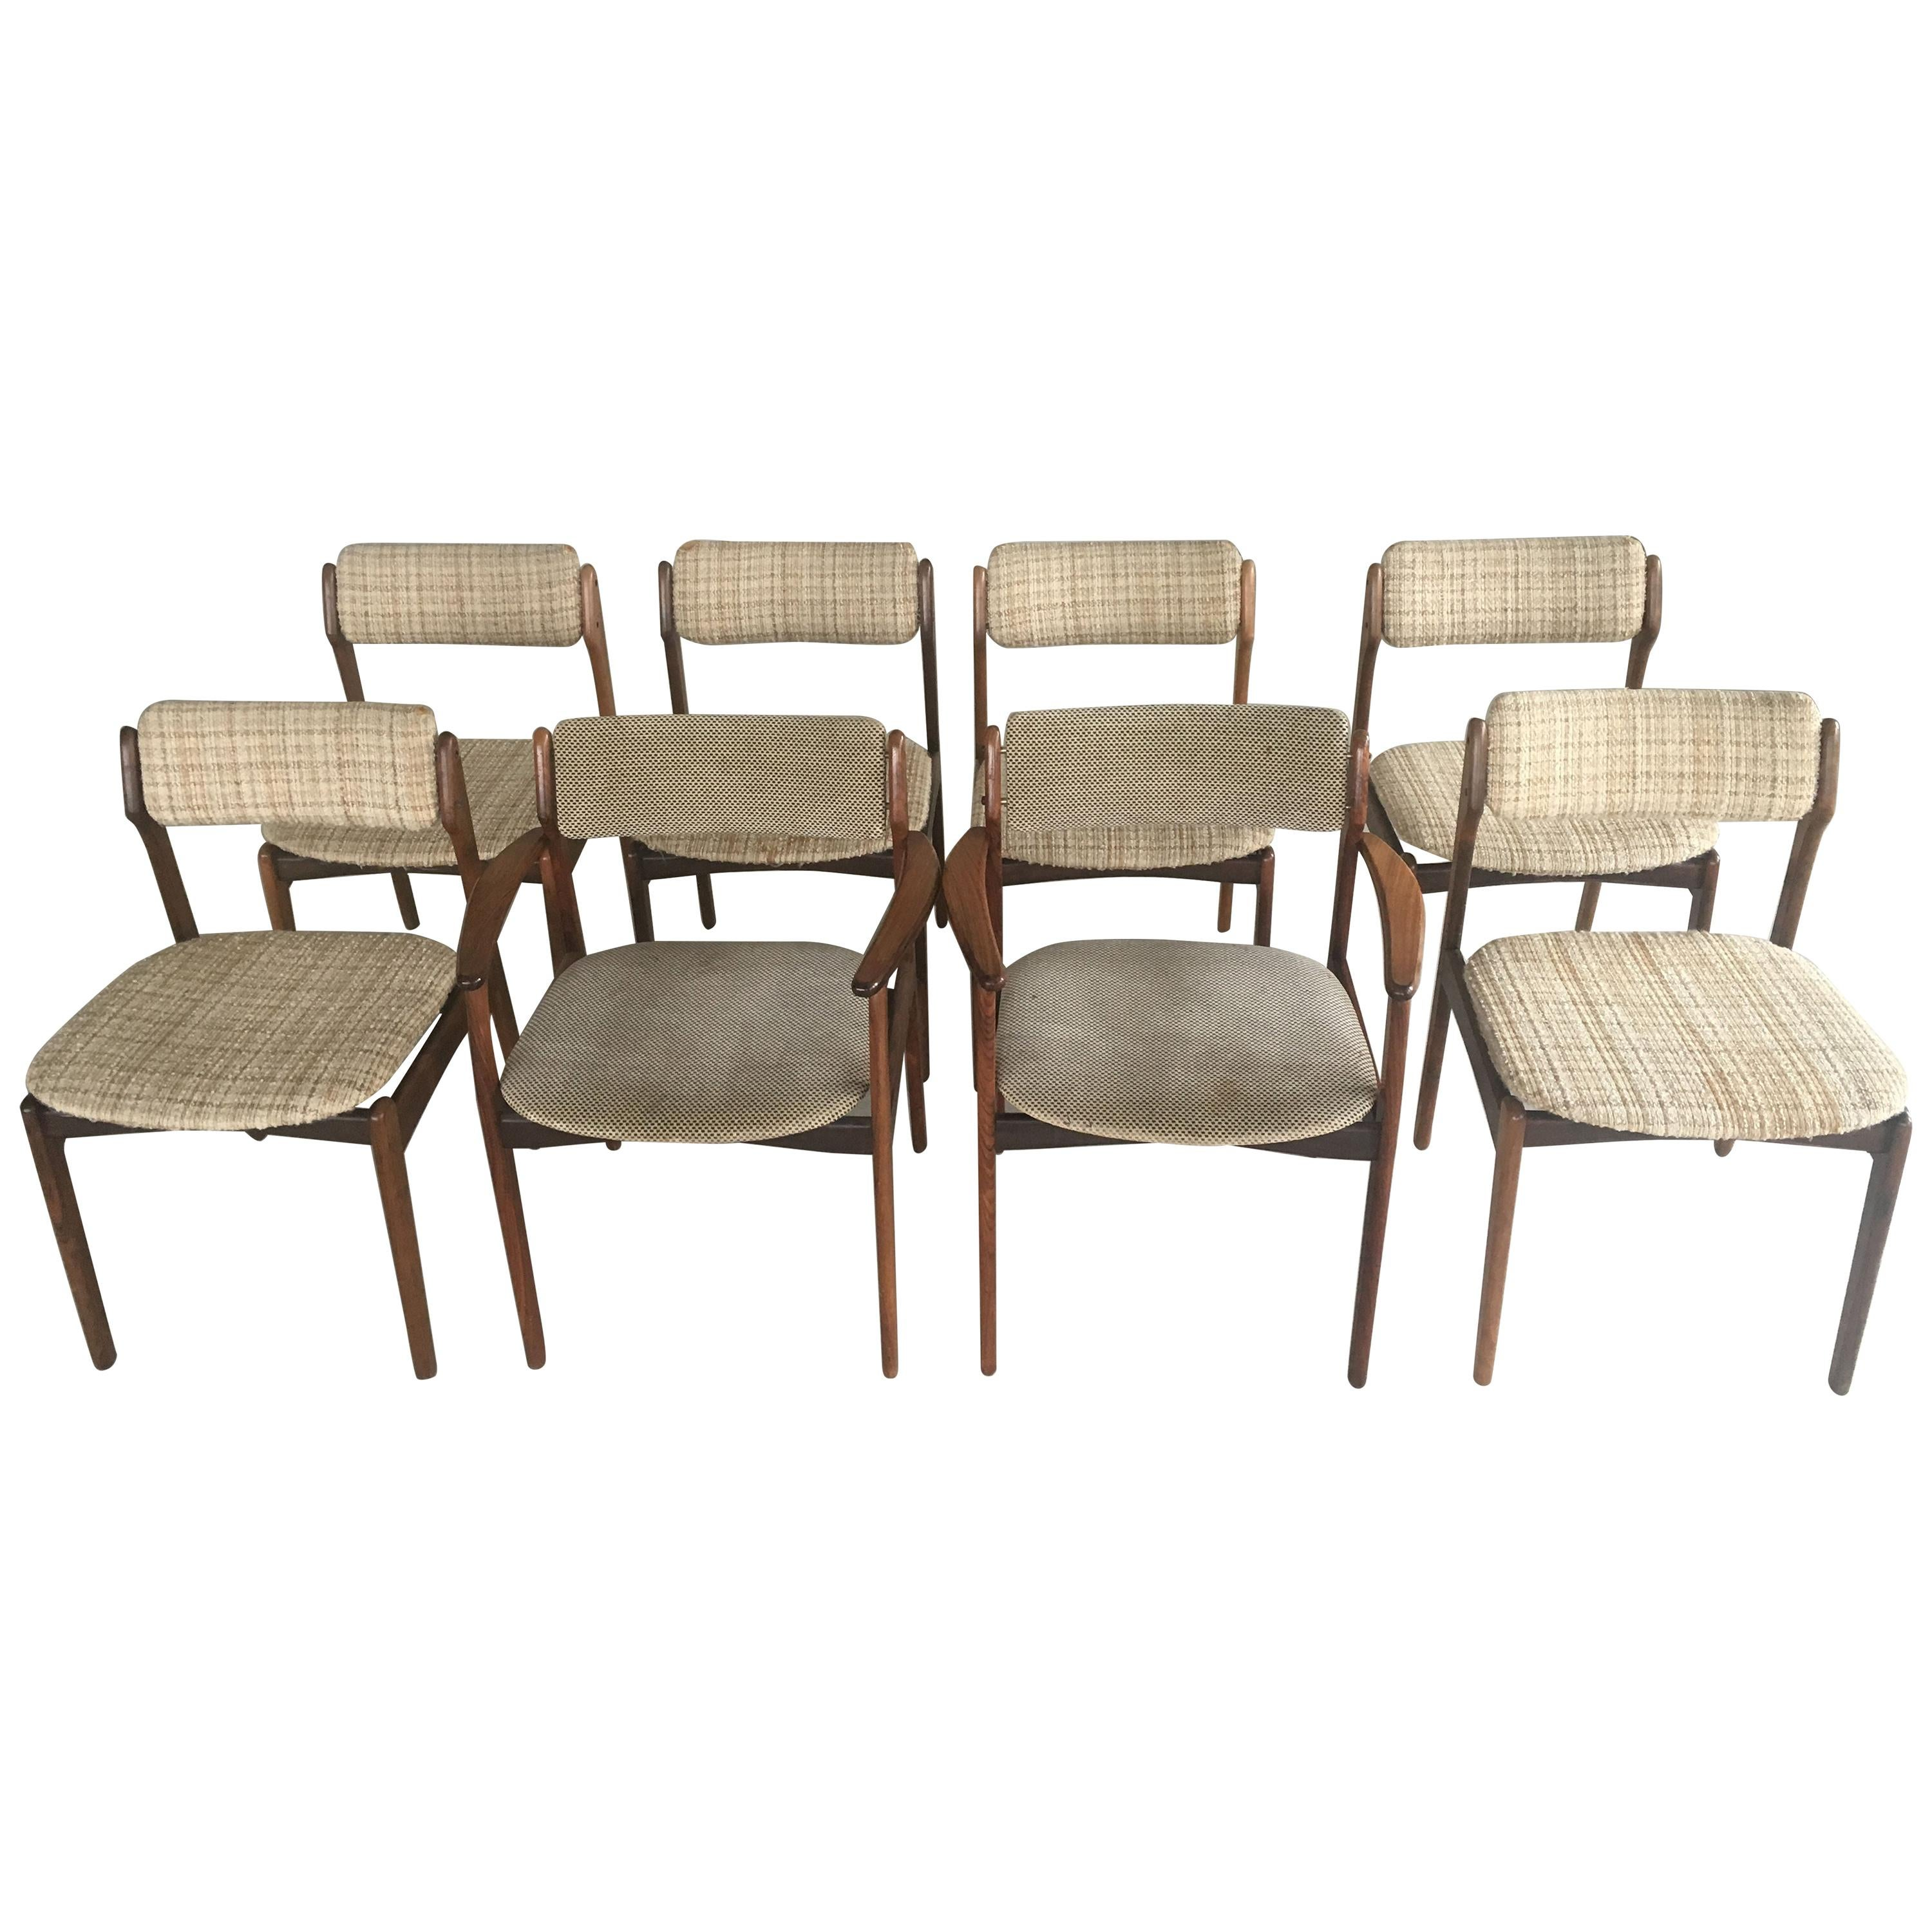 Six Erik Buch Dining chairs and Two Armchairs in Rosewood - Inc. Reupholstery